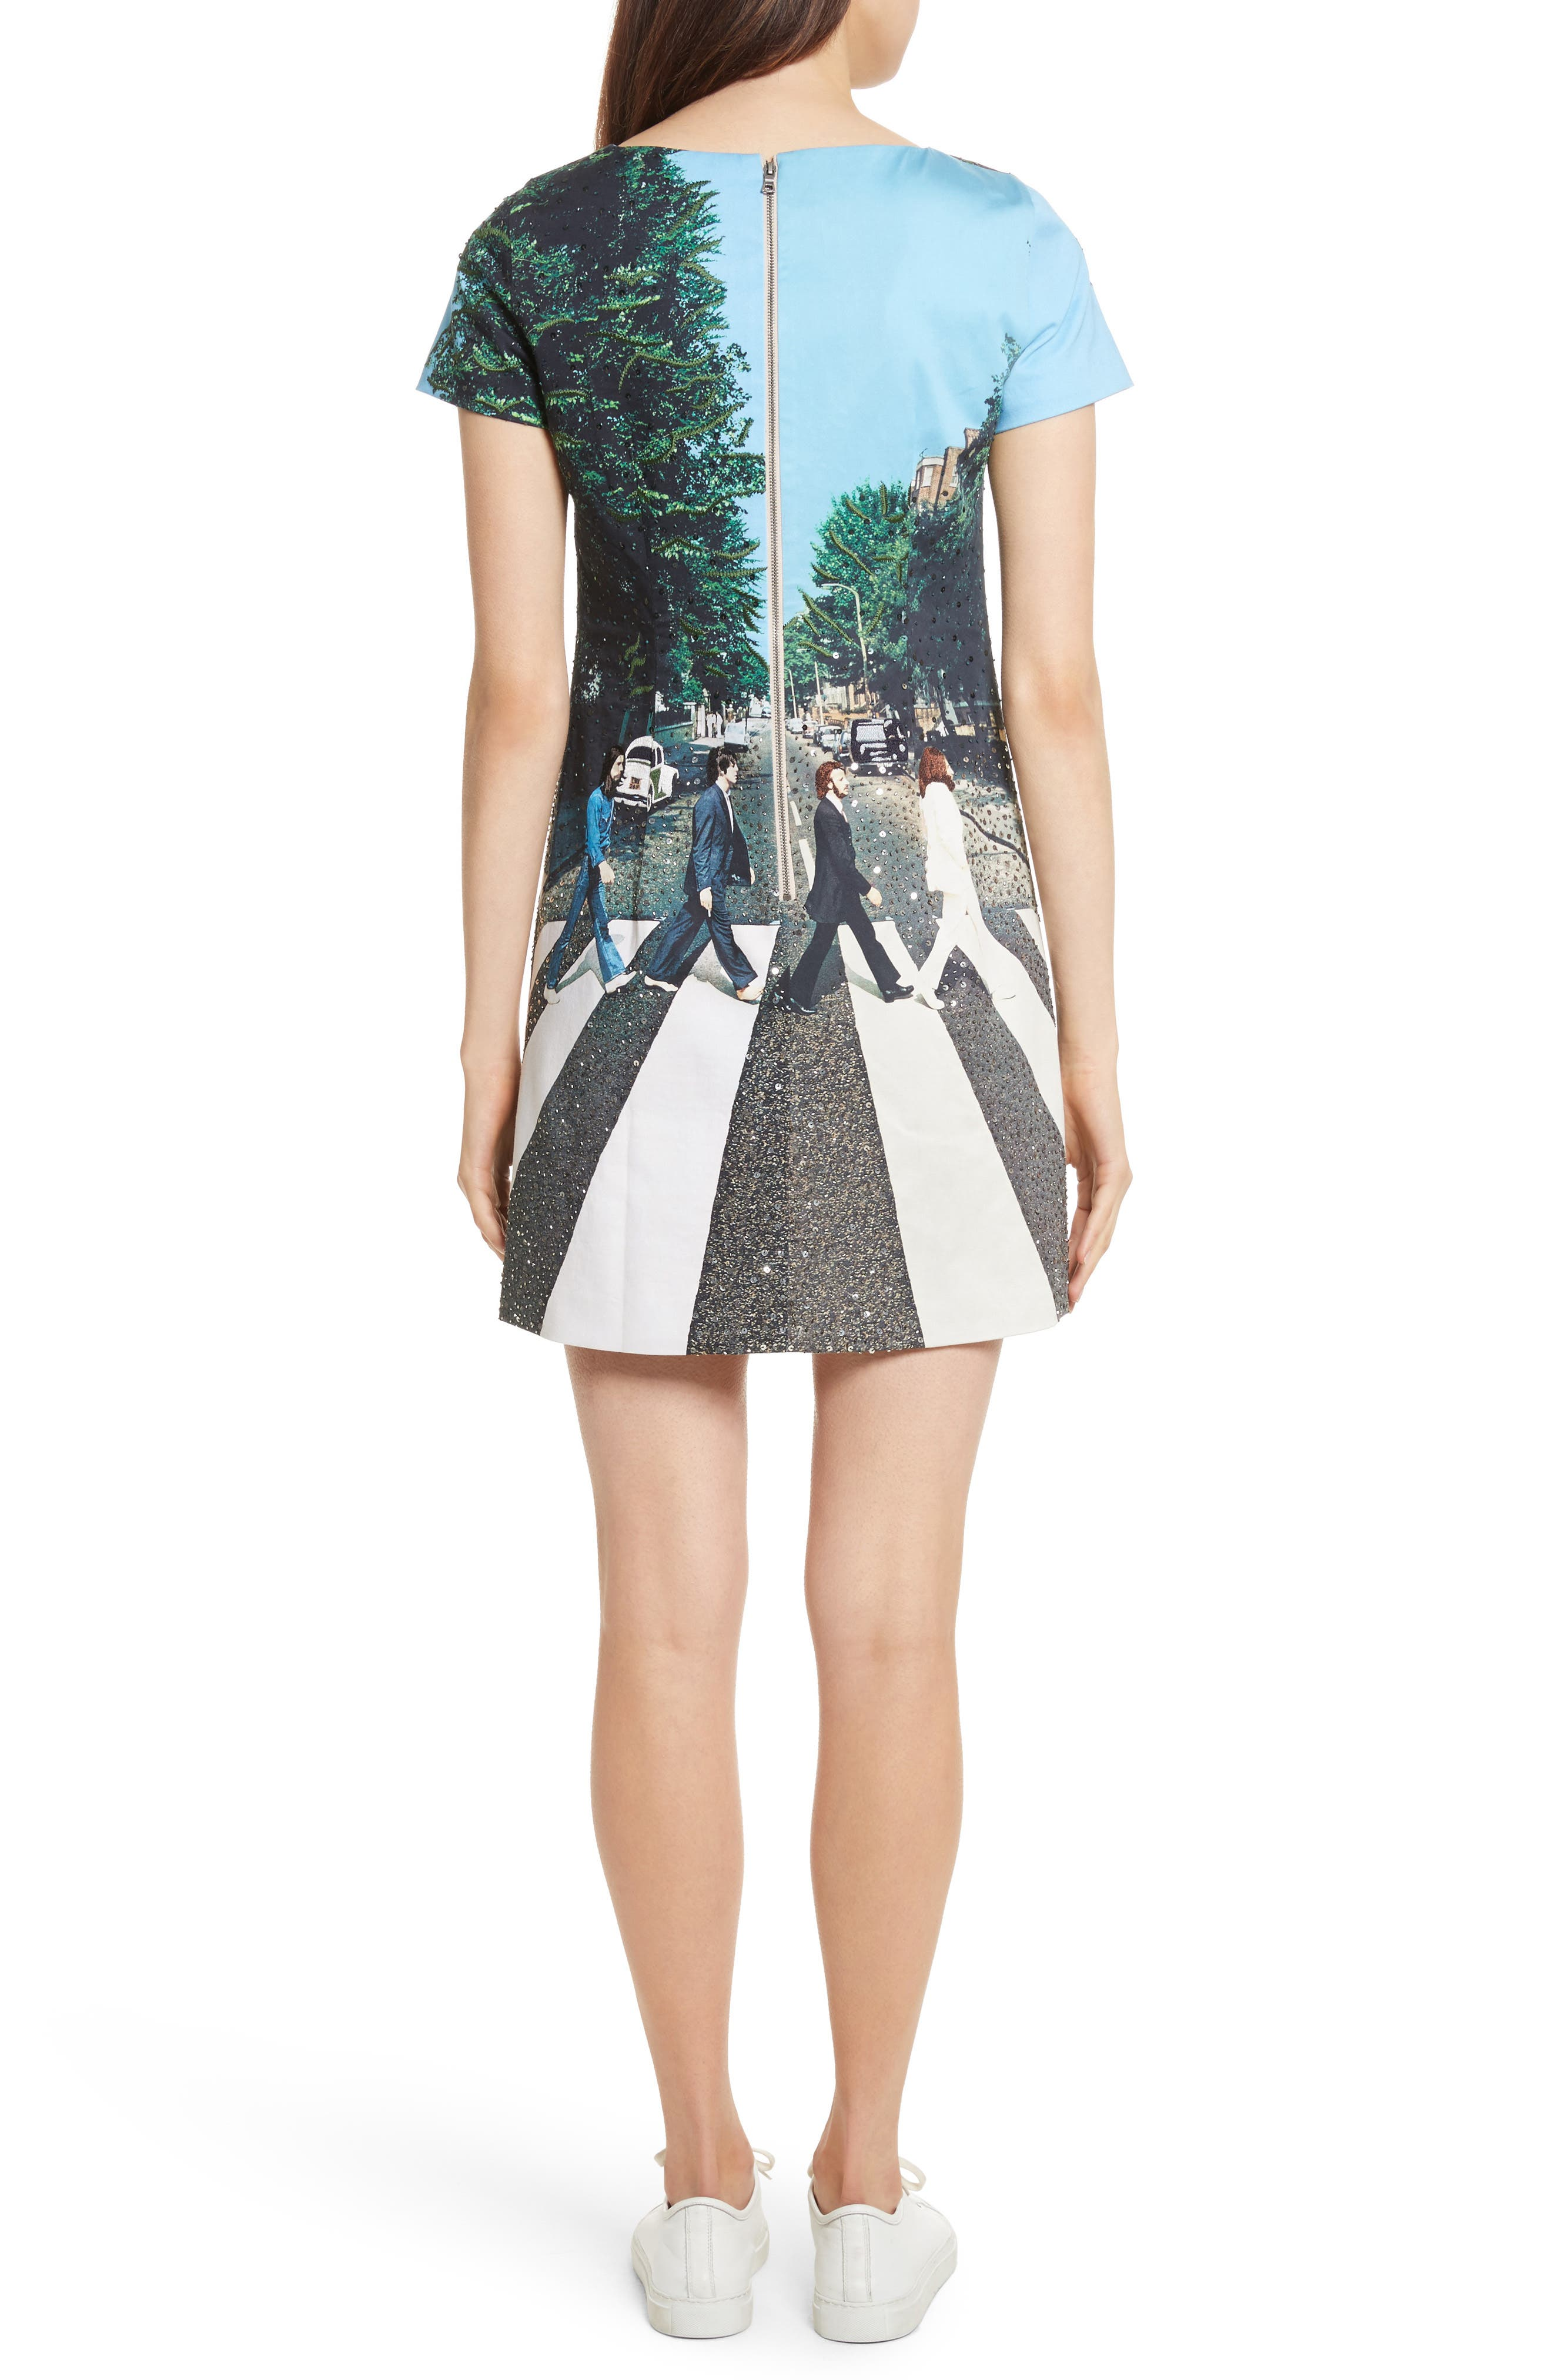 ALICE + OLIVIA,                             AO x The Beatles Sequined Shift Dress,                             Alternate thumbnail 2, color,                             473